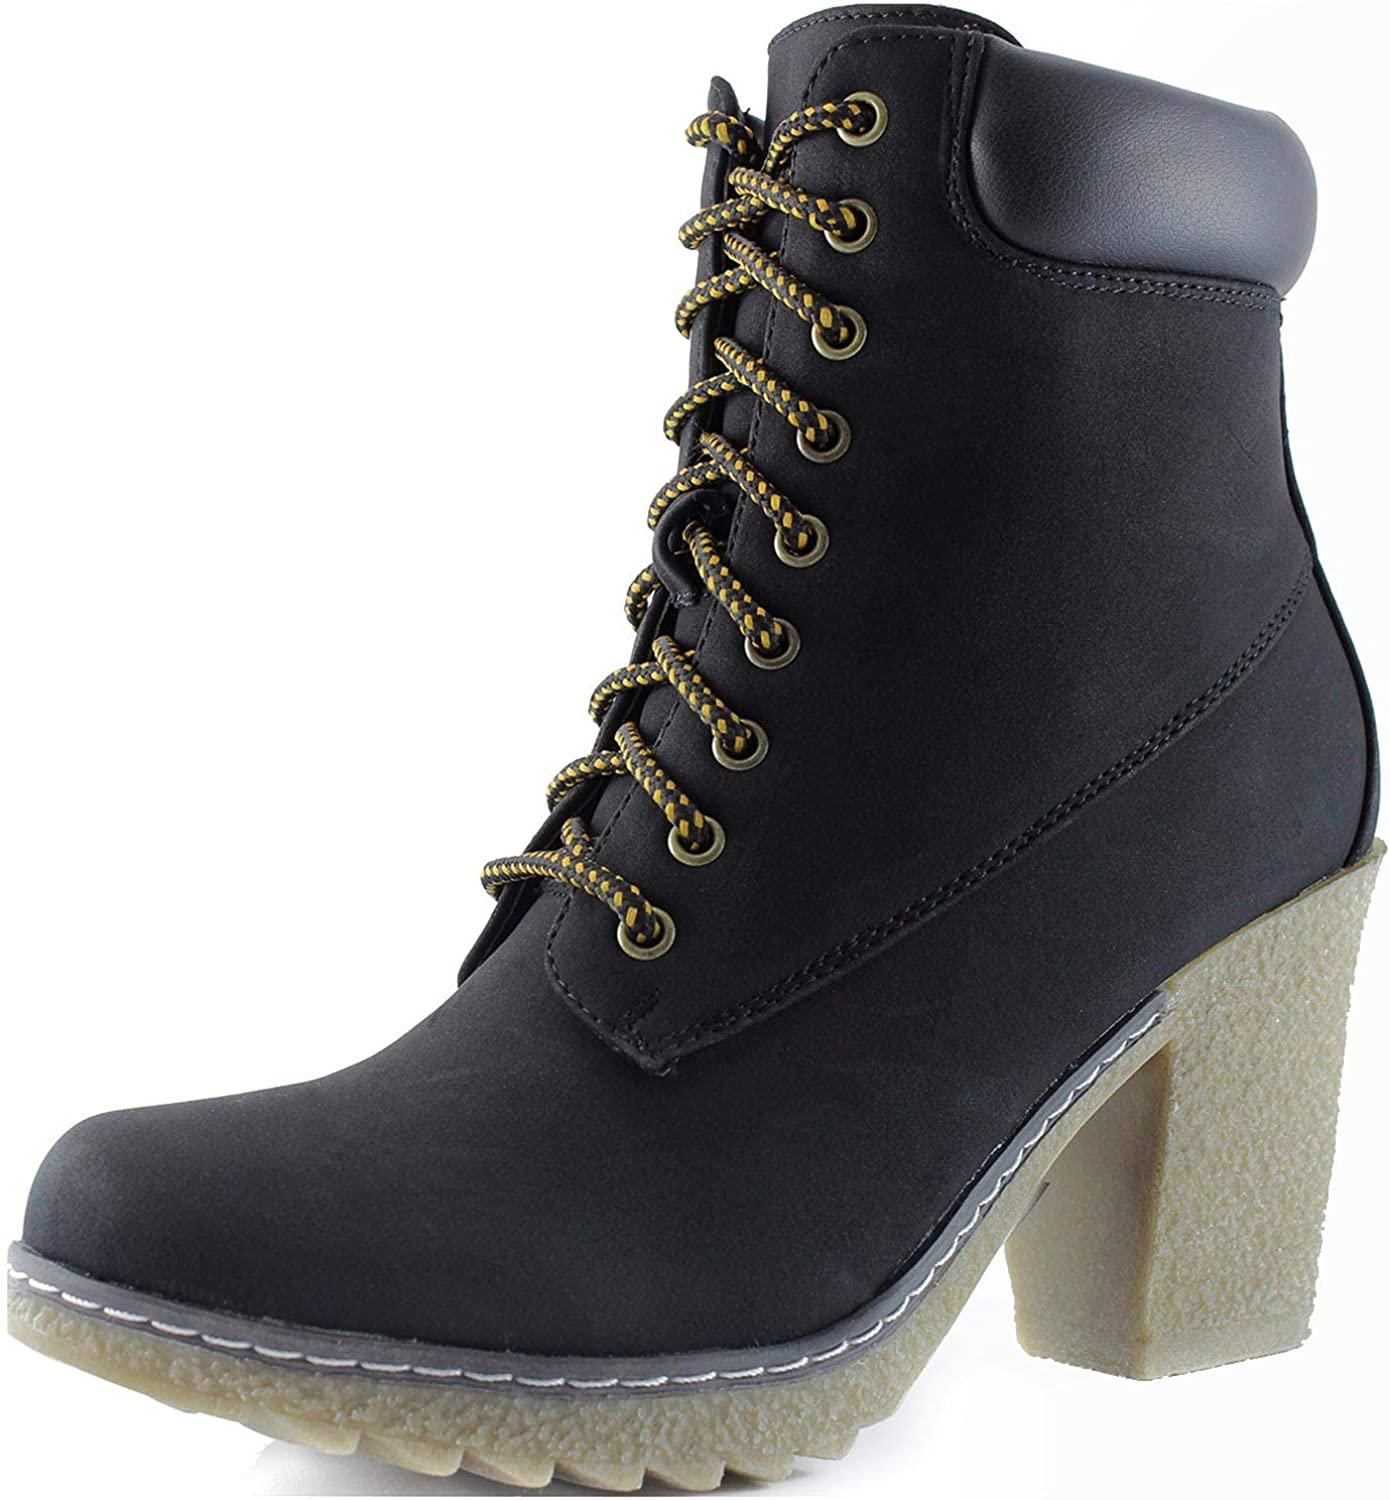 Nature Breeze Women's Lace Up Fold Over Ankle Bootie Shoe